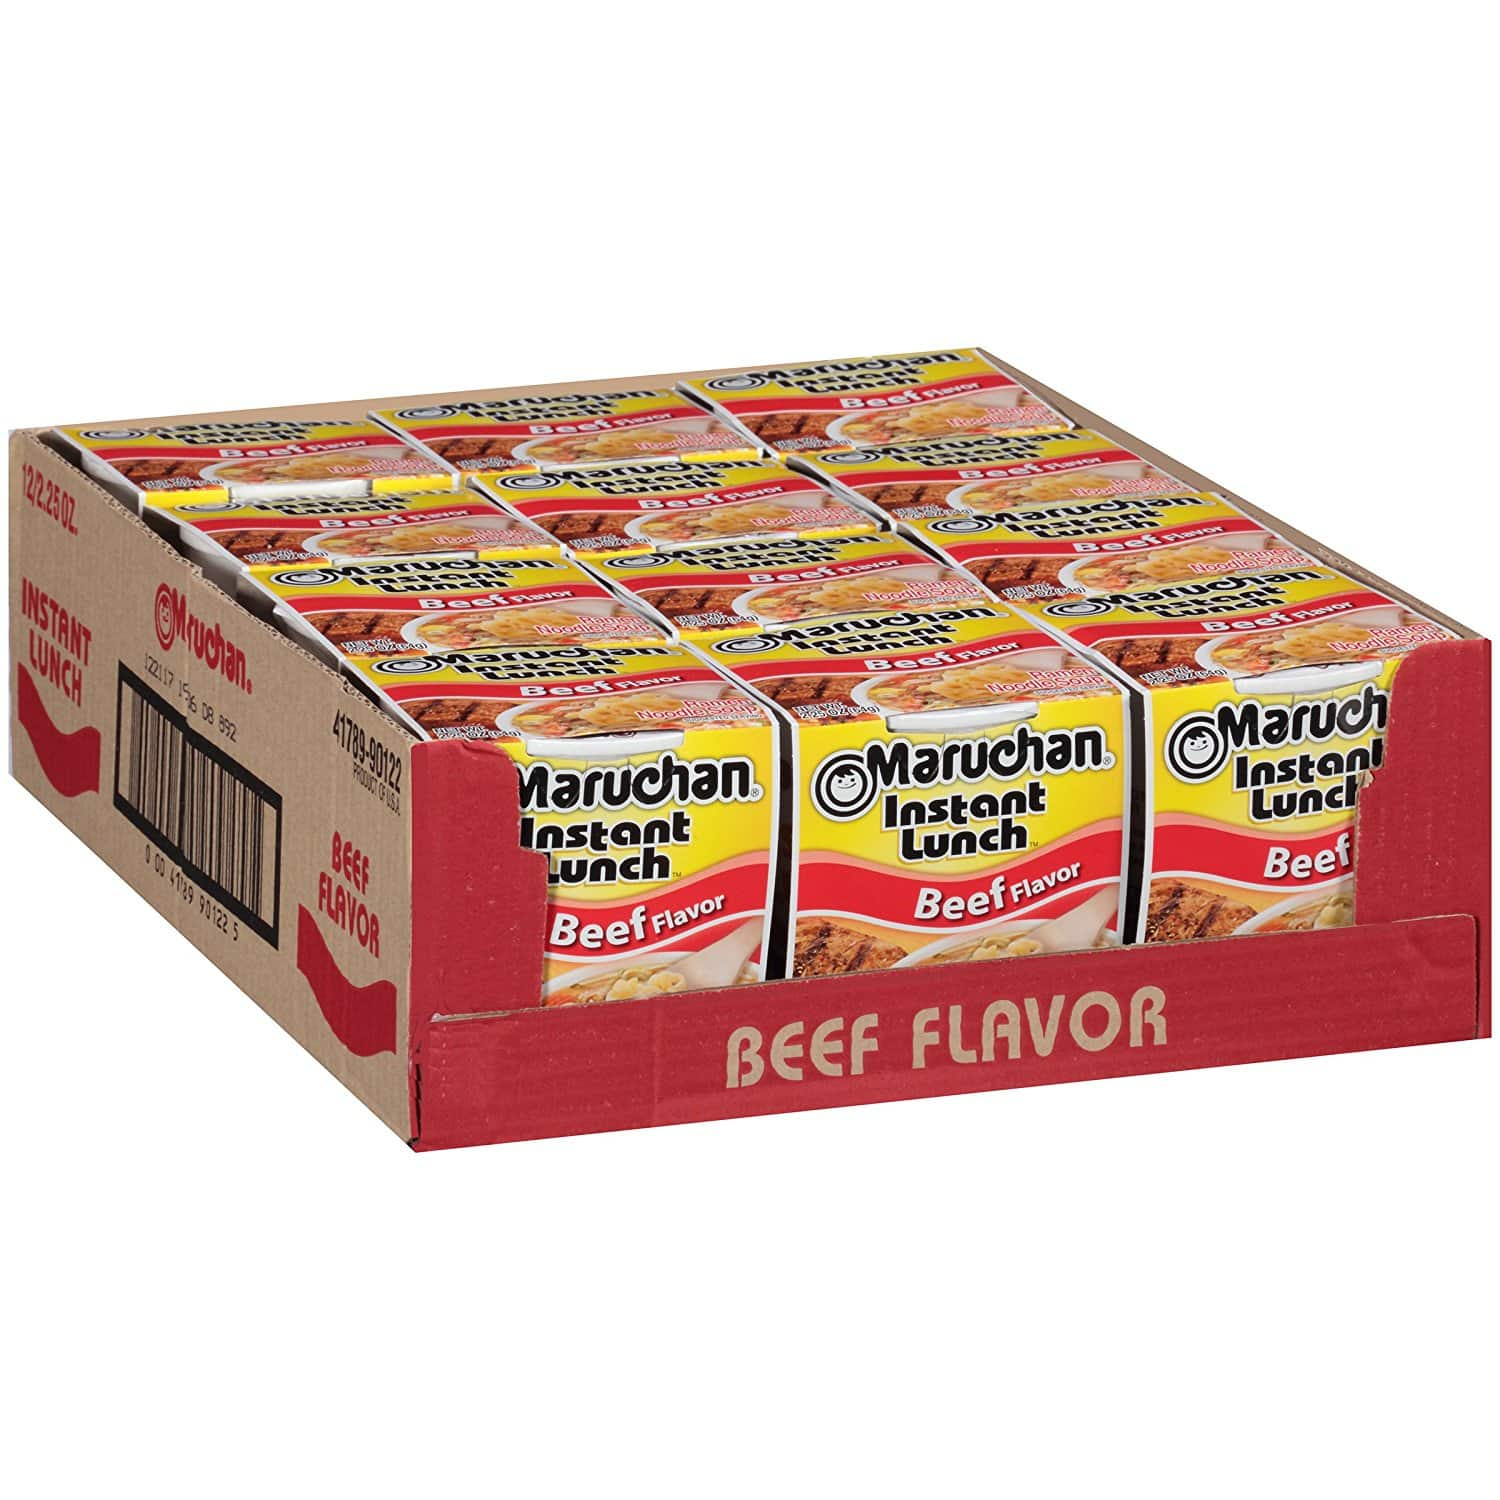 12-Pack Maruchan Cup Noodles (Beef) for $3.48 + Free Prime Shipping